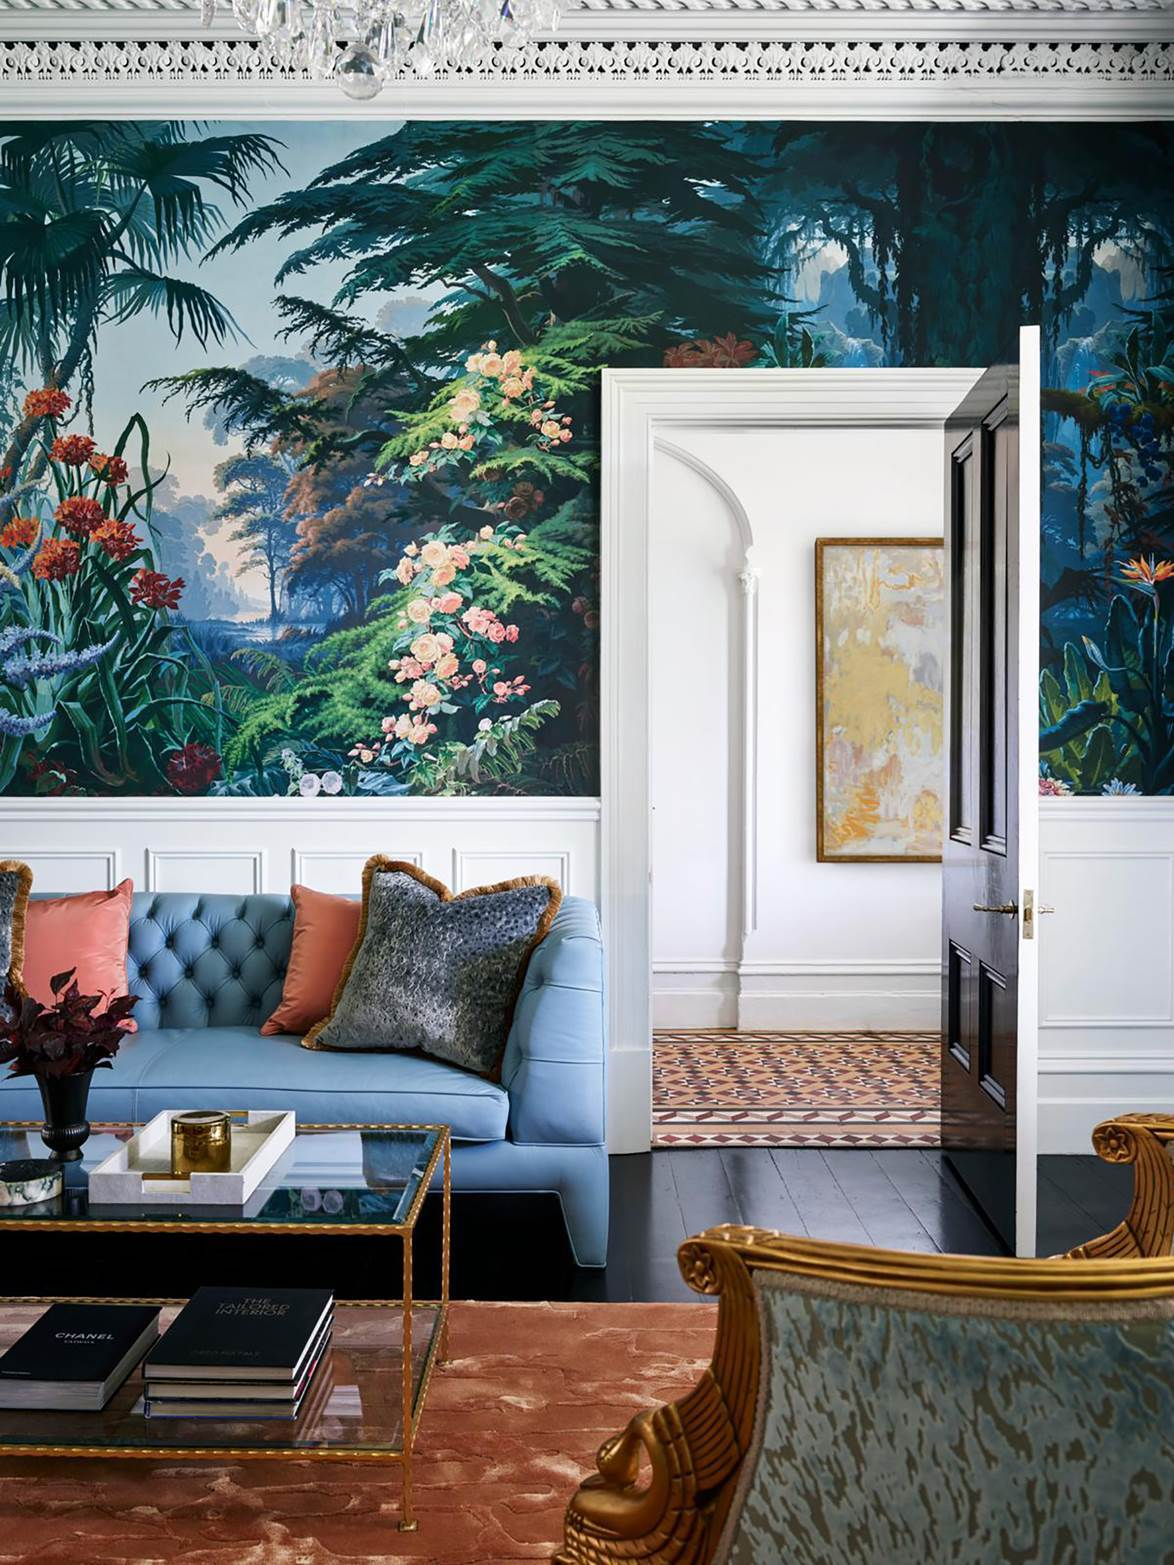 """Splendid vision from architect Daniel Boddam and interior designer Stacey Kouros for transformed a tired [1880s terrace](https://www.homestolove.com.au/glamorous-makeover-of1880s-terrace-21031